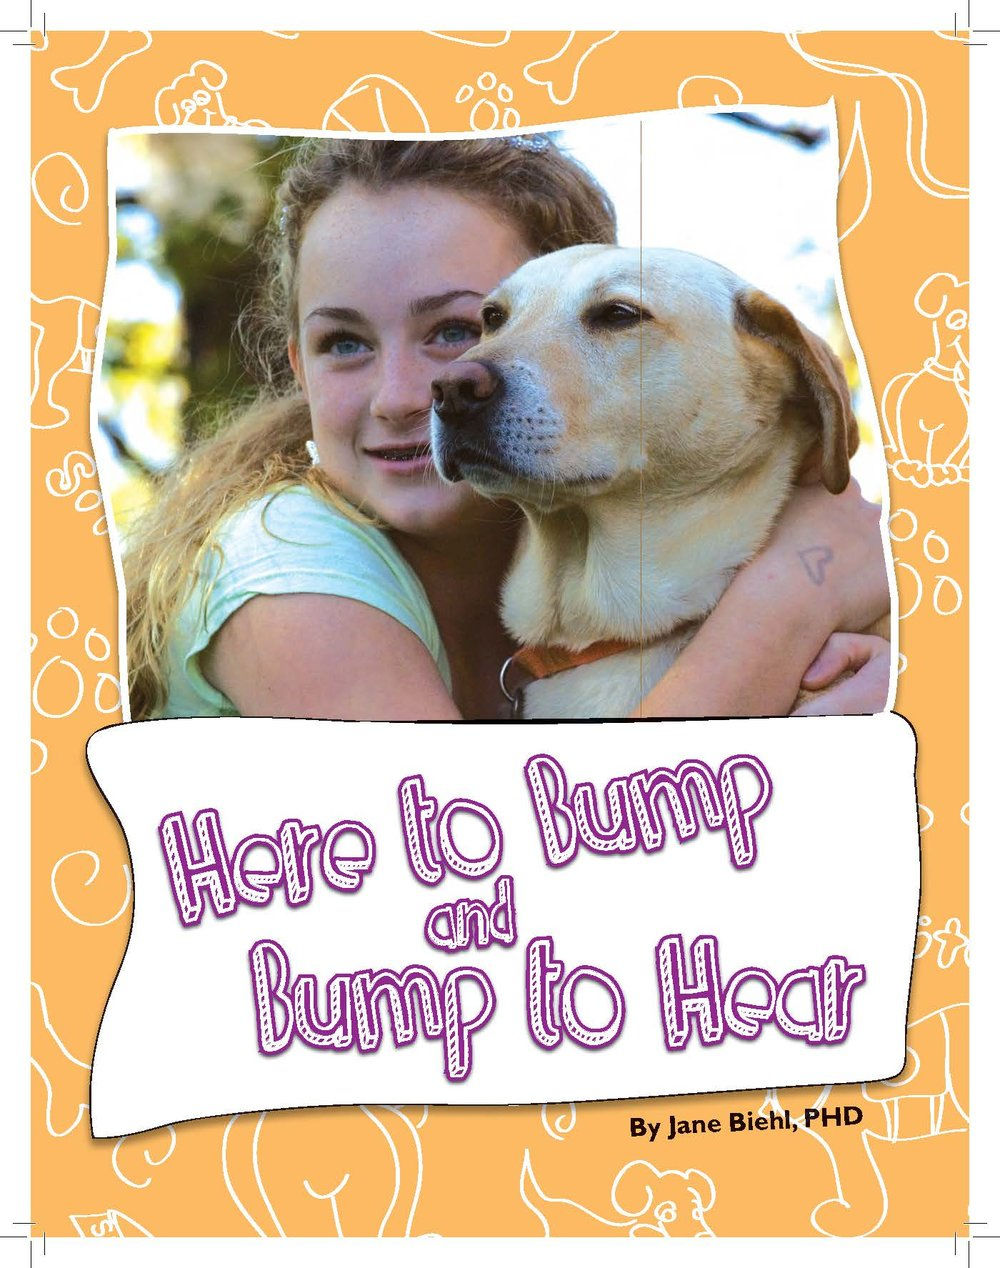 T he author's first book  Here to bump and bump to hear  is the story of a hearing ear service dog named Sita and how she was rescued from a shelter, trained in the Ohio prison program and became a partner for the author.